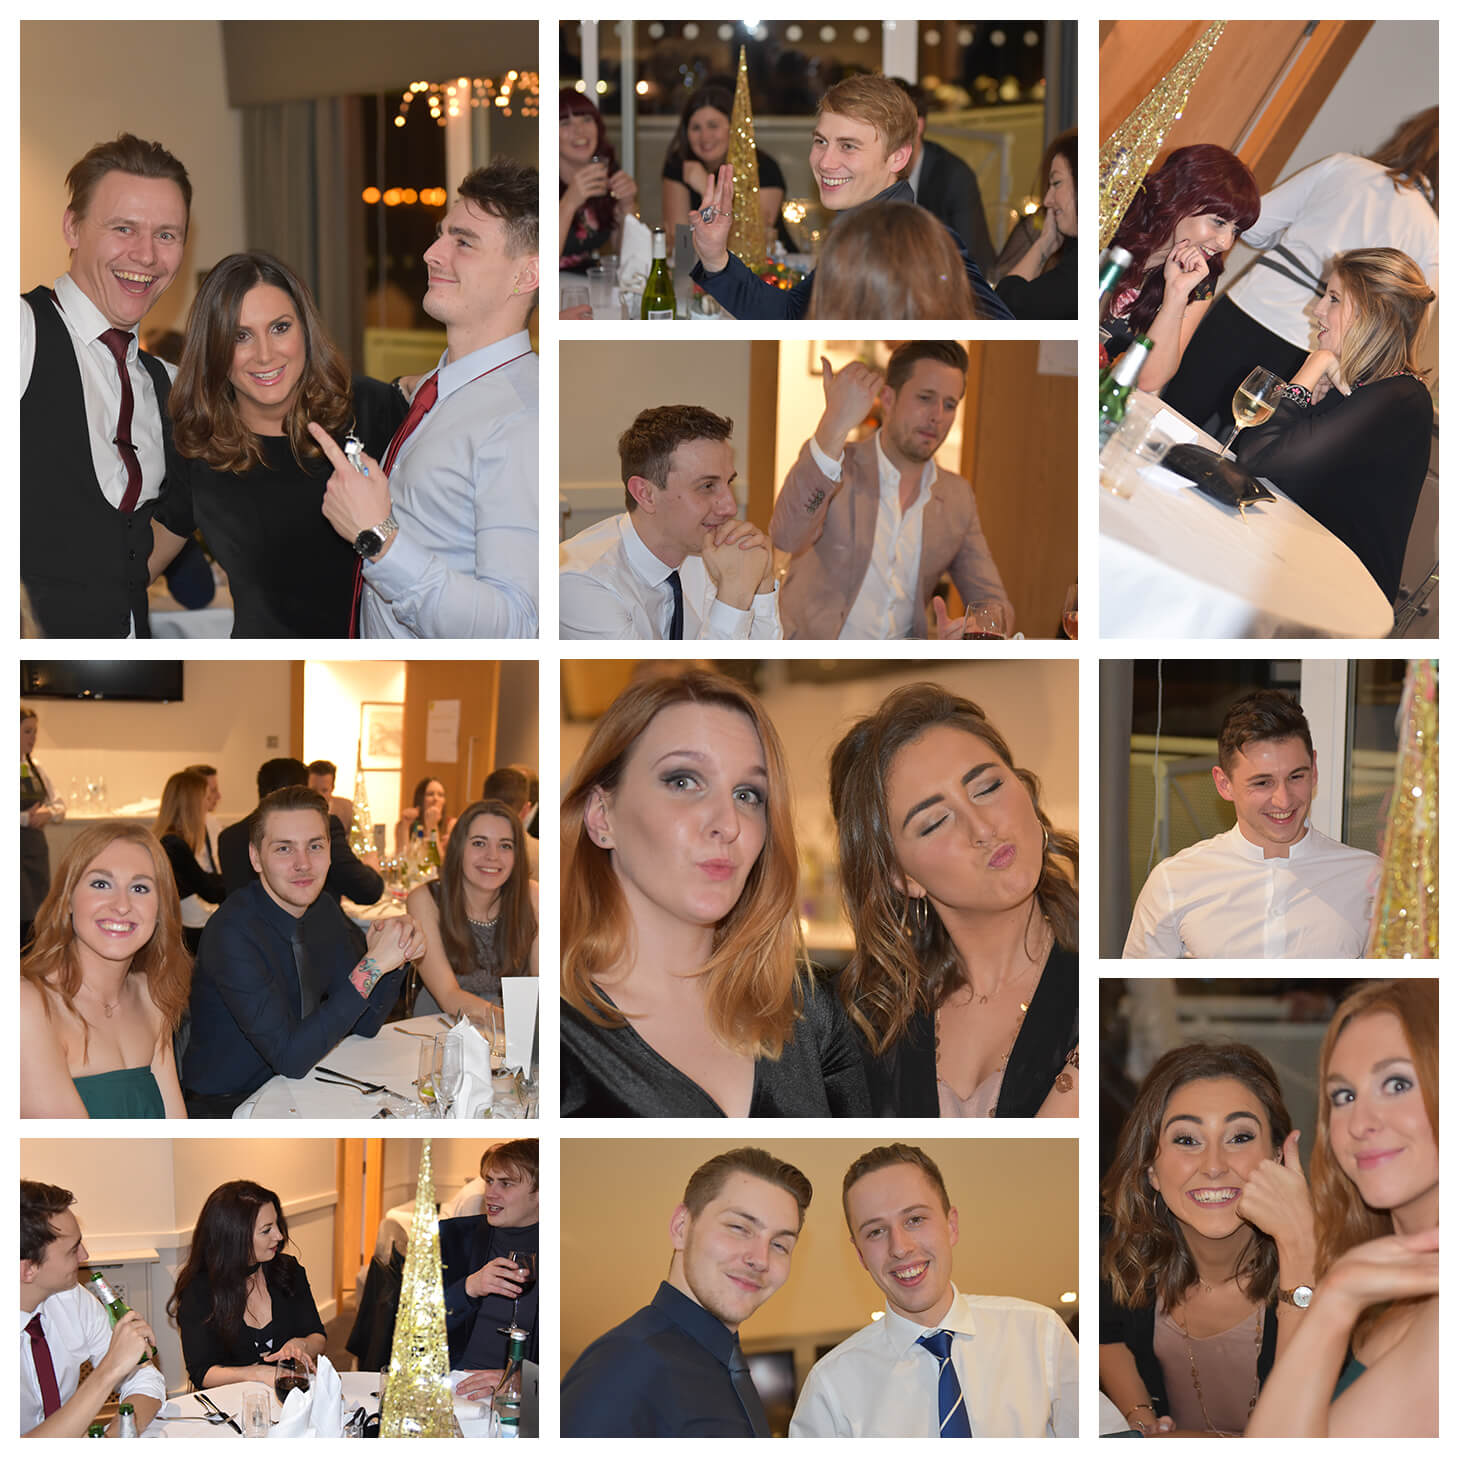 More photos of the team at the office Christmas party